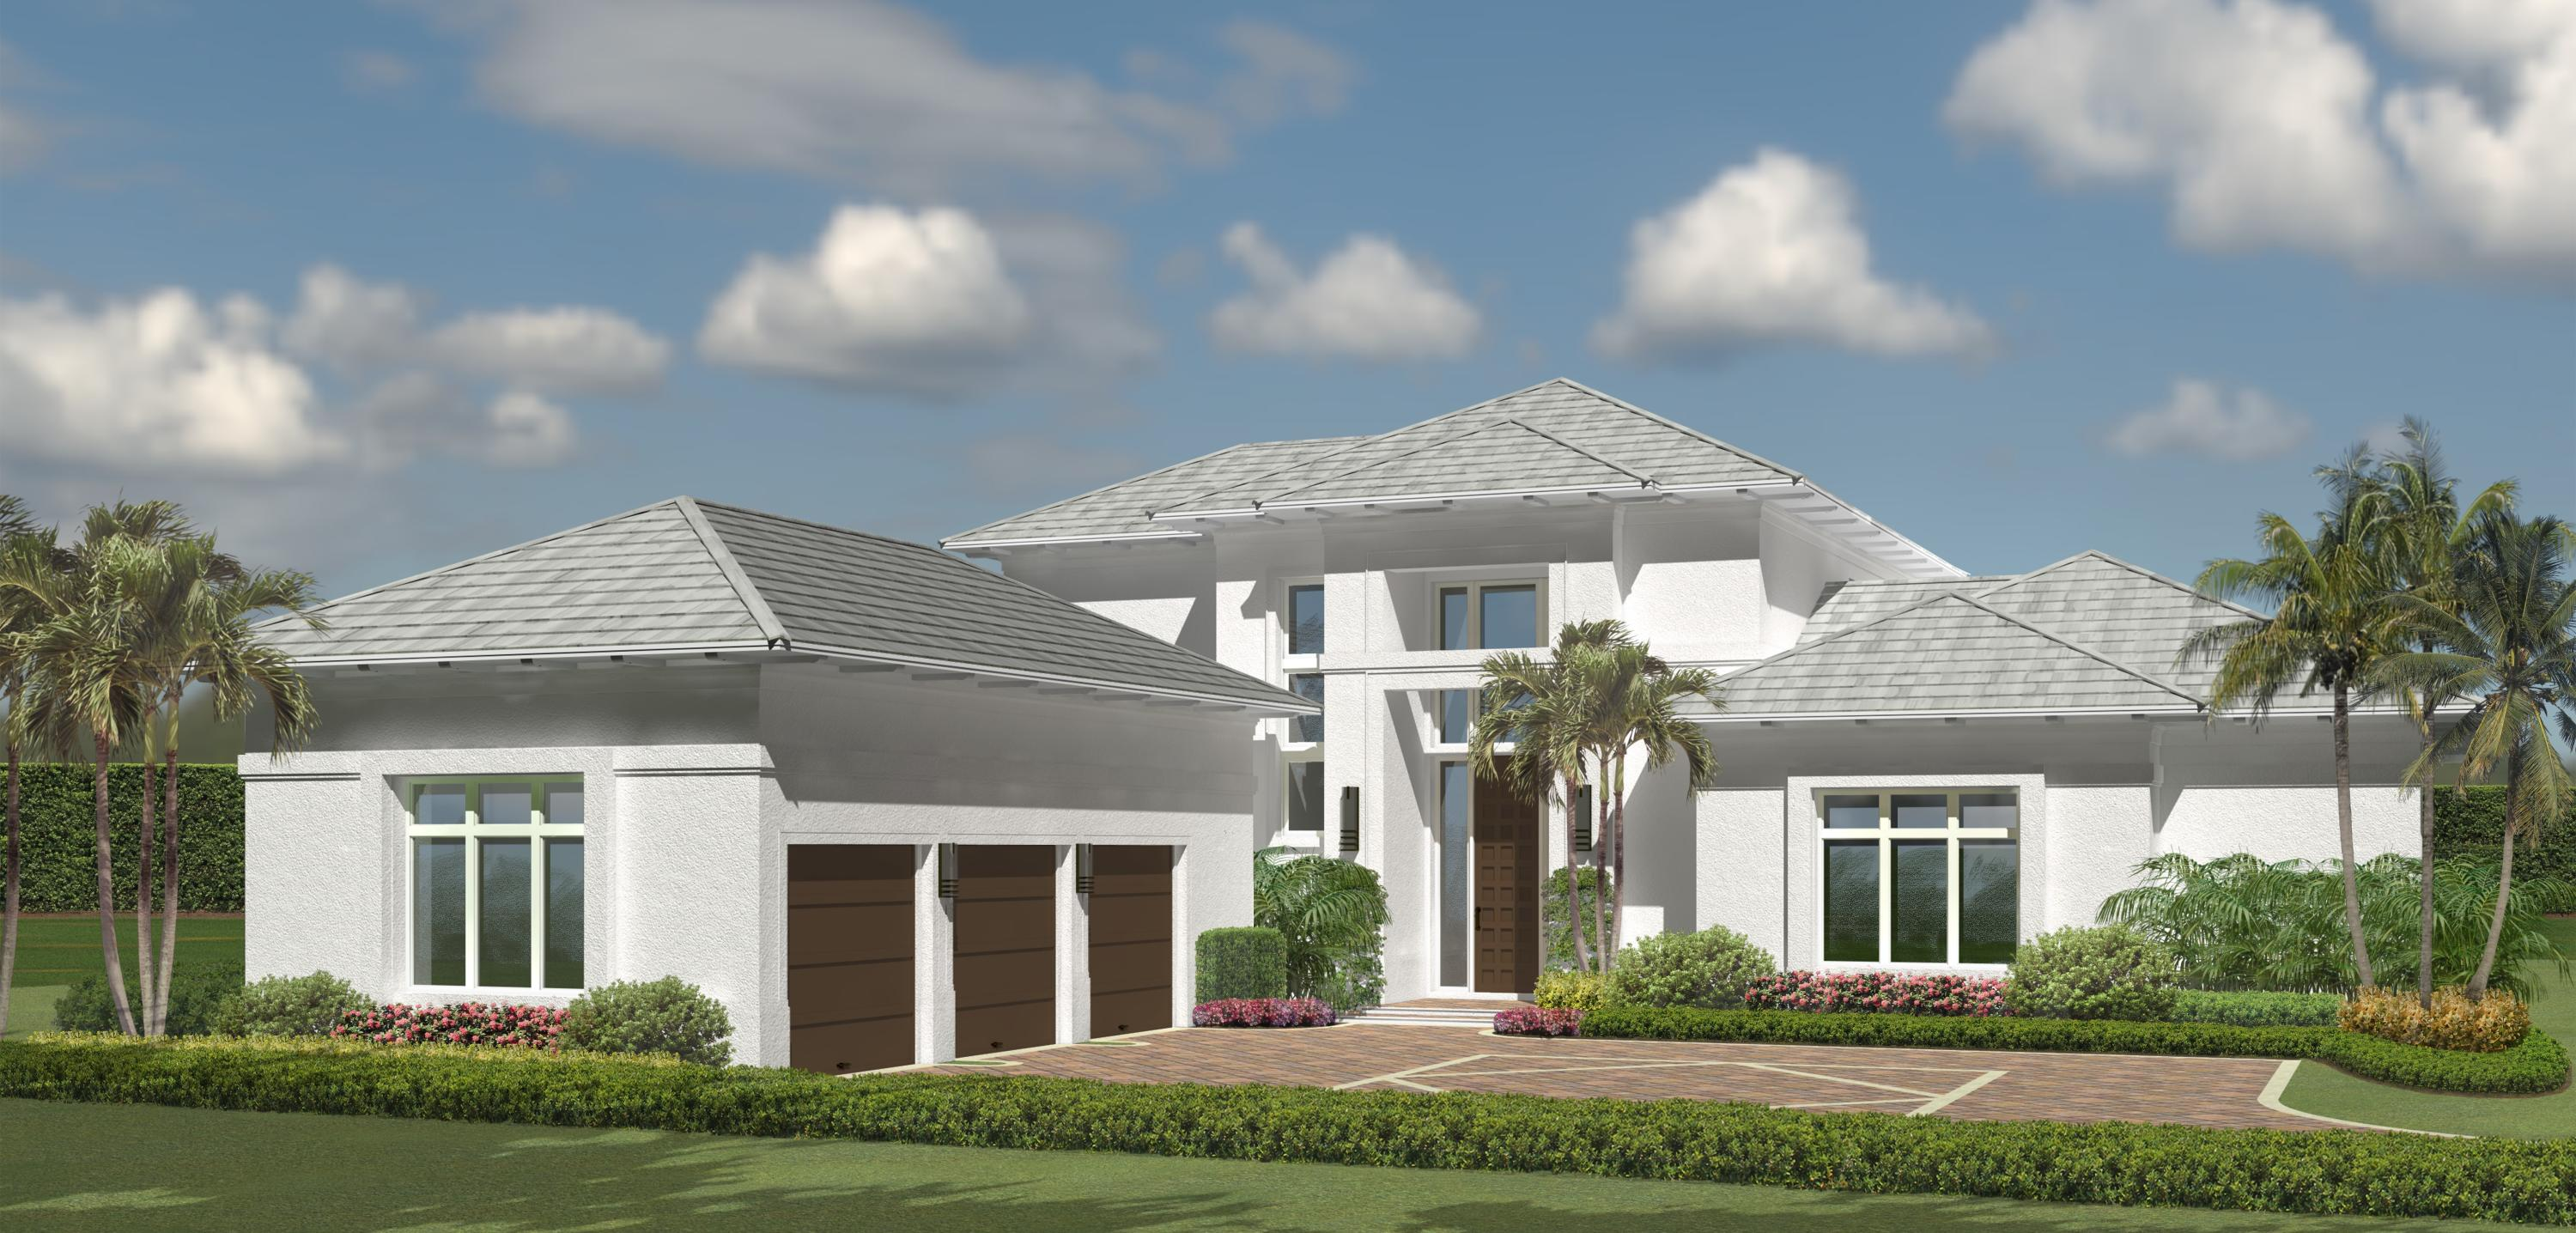 New Home for sale at 12035 Corozo Court in Palm Beach Gardens